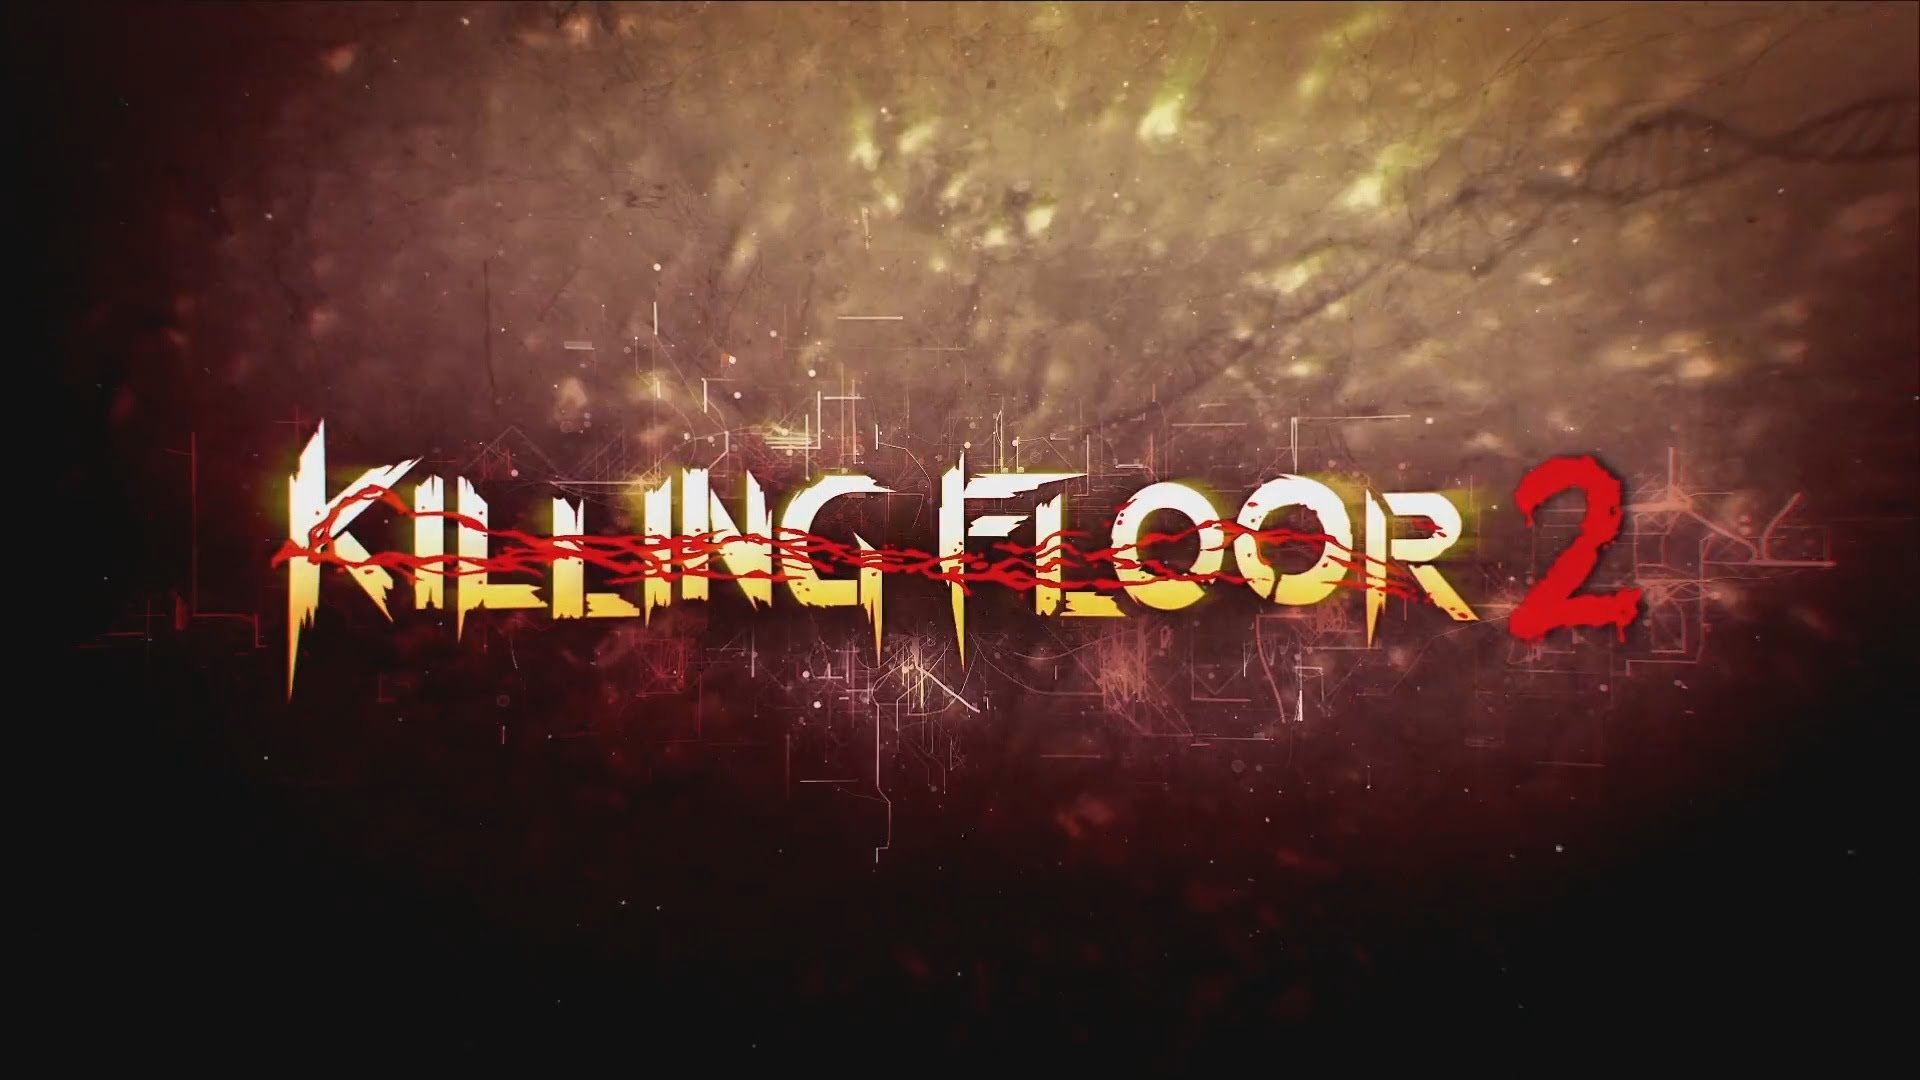 Killing Floor 2 Hd Wallpaper Background Image 1920x1080 Id 852706 Wallpaper Abyss